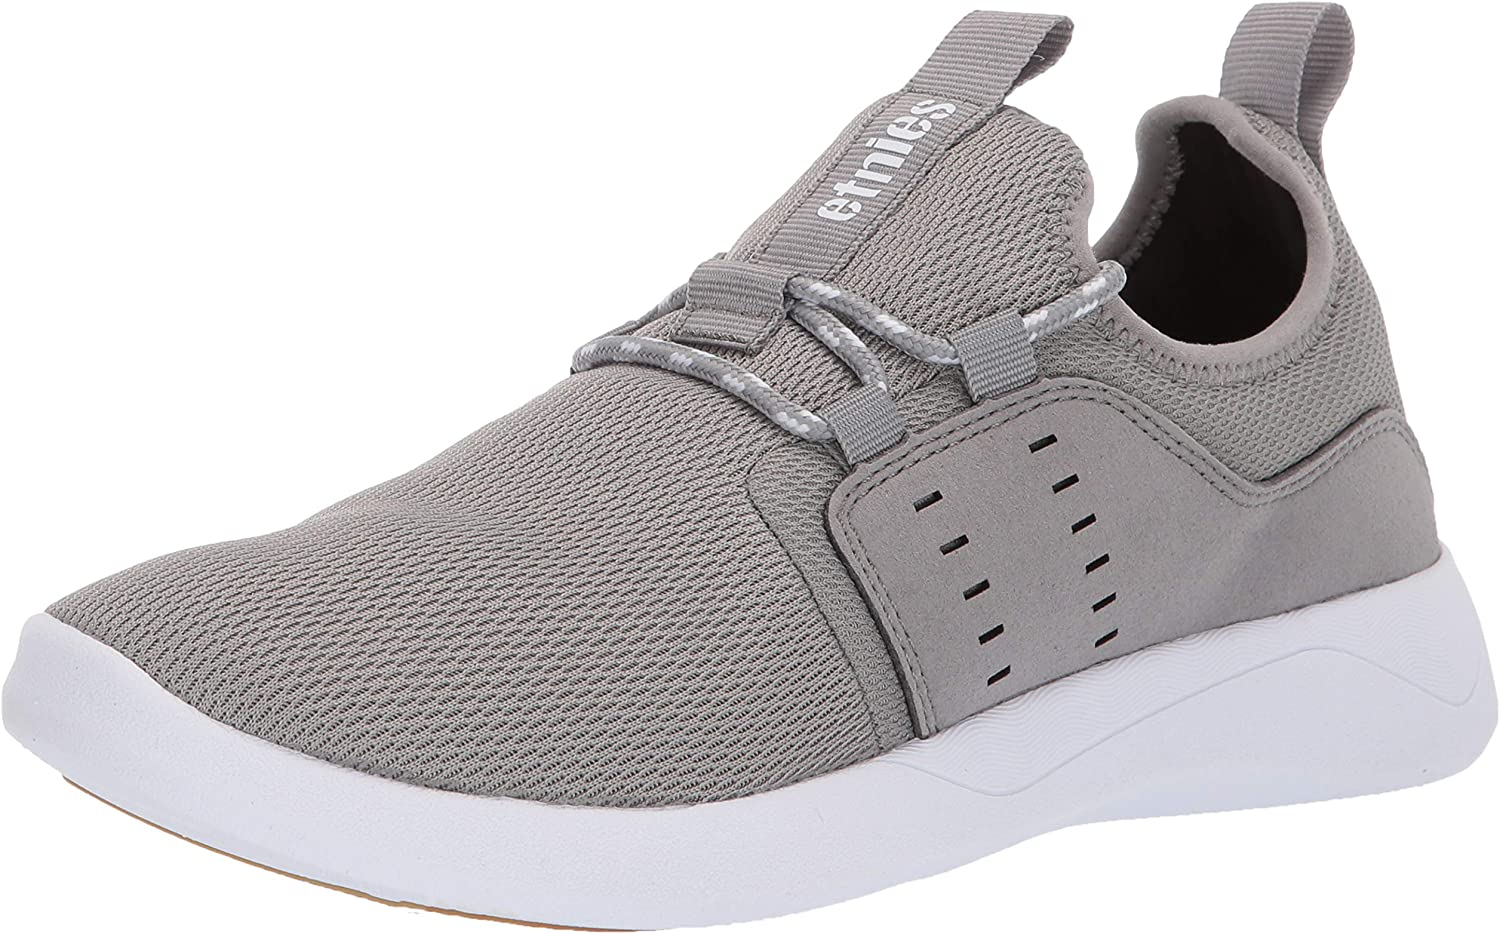 Etnies Men's Vanguard Skate Shoe